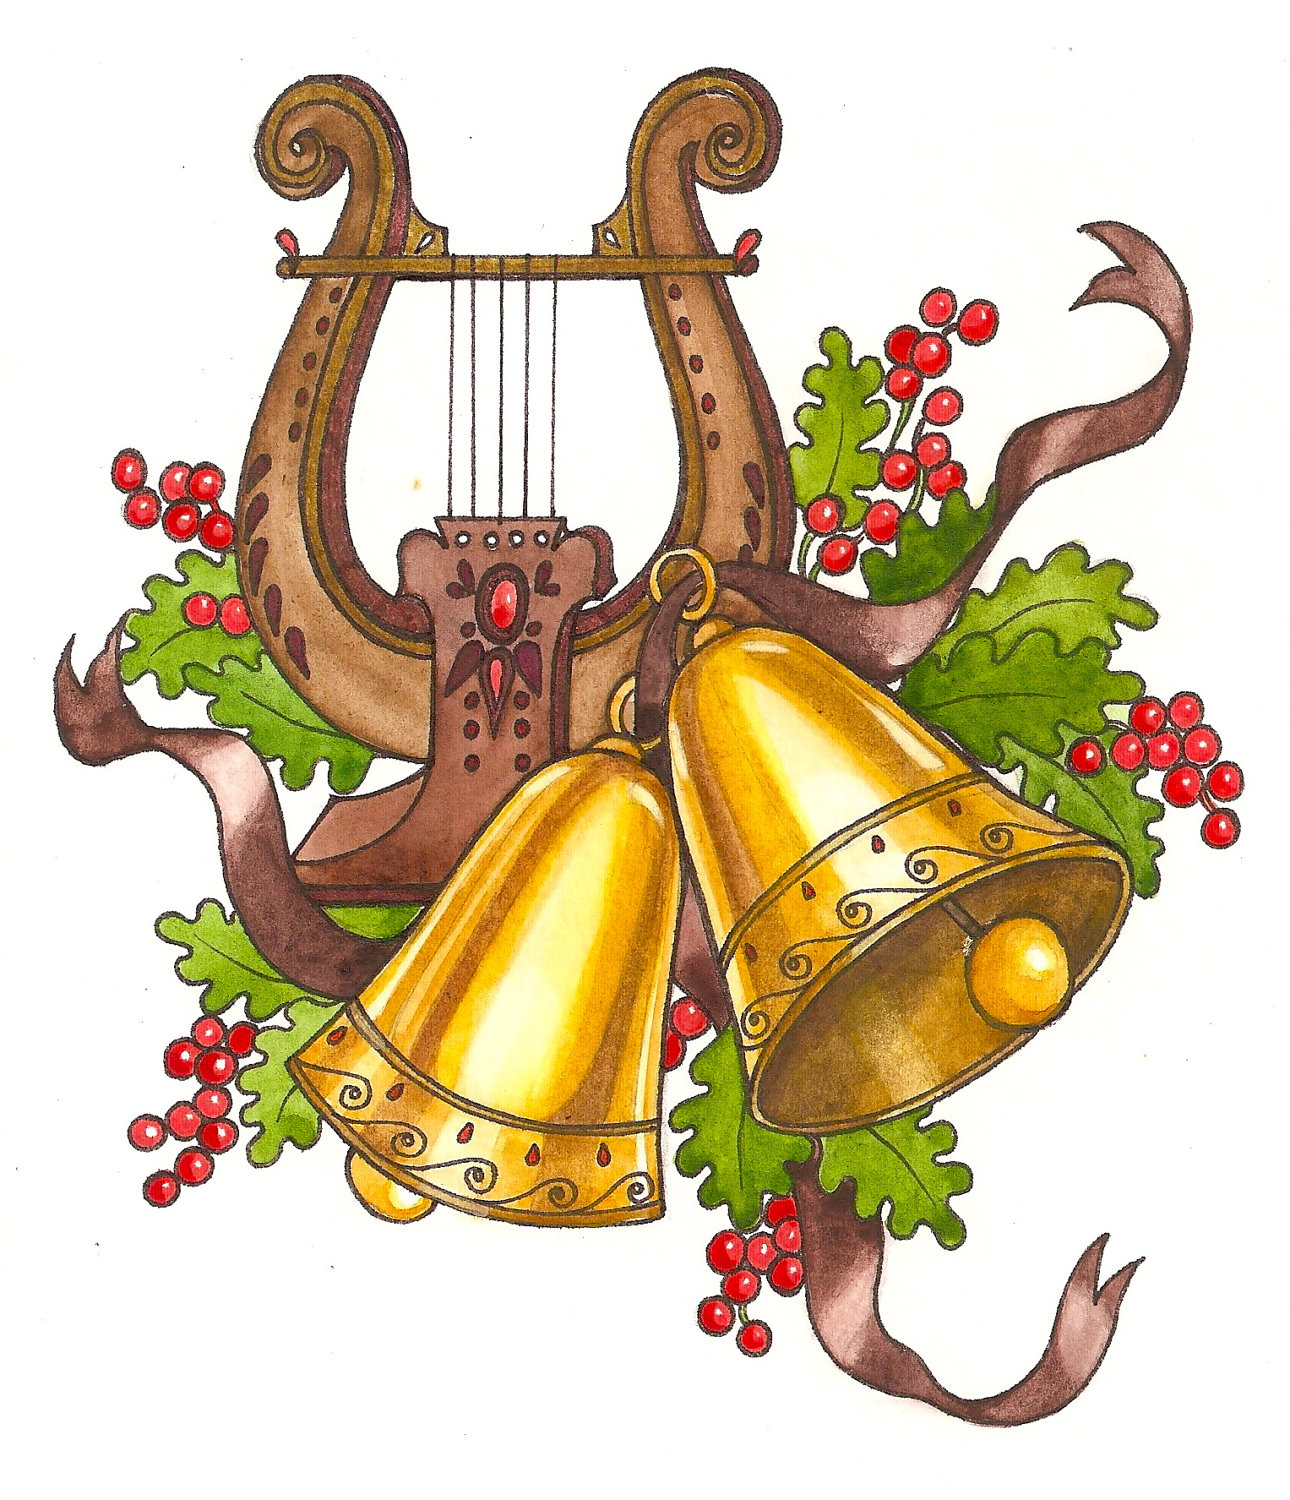 Christmas music clipart violin image free download 48+ Christmas Music Clipart | ClipartLook image free download